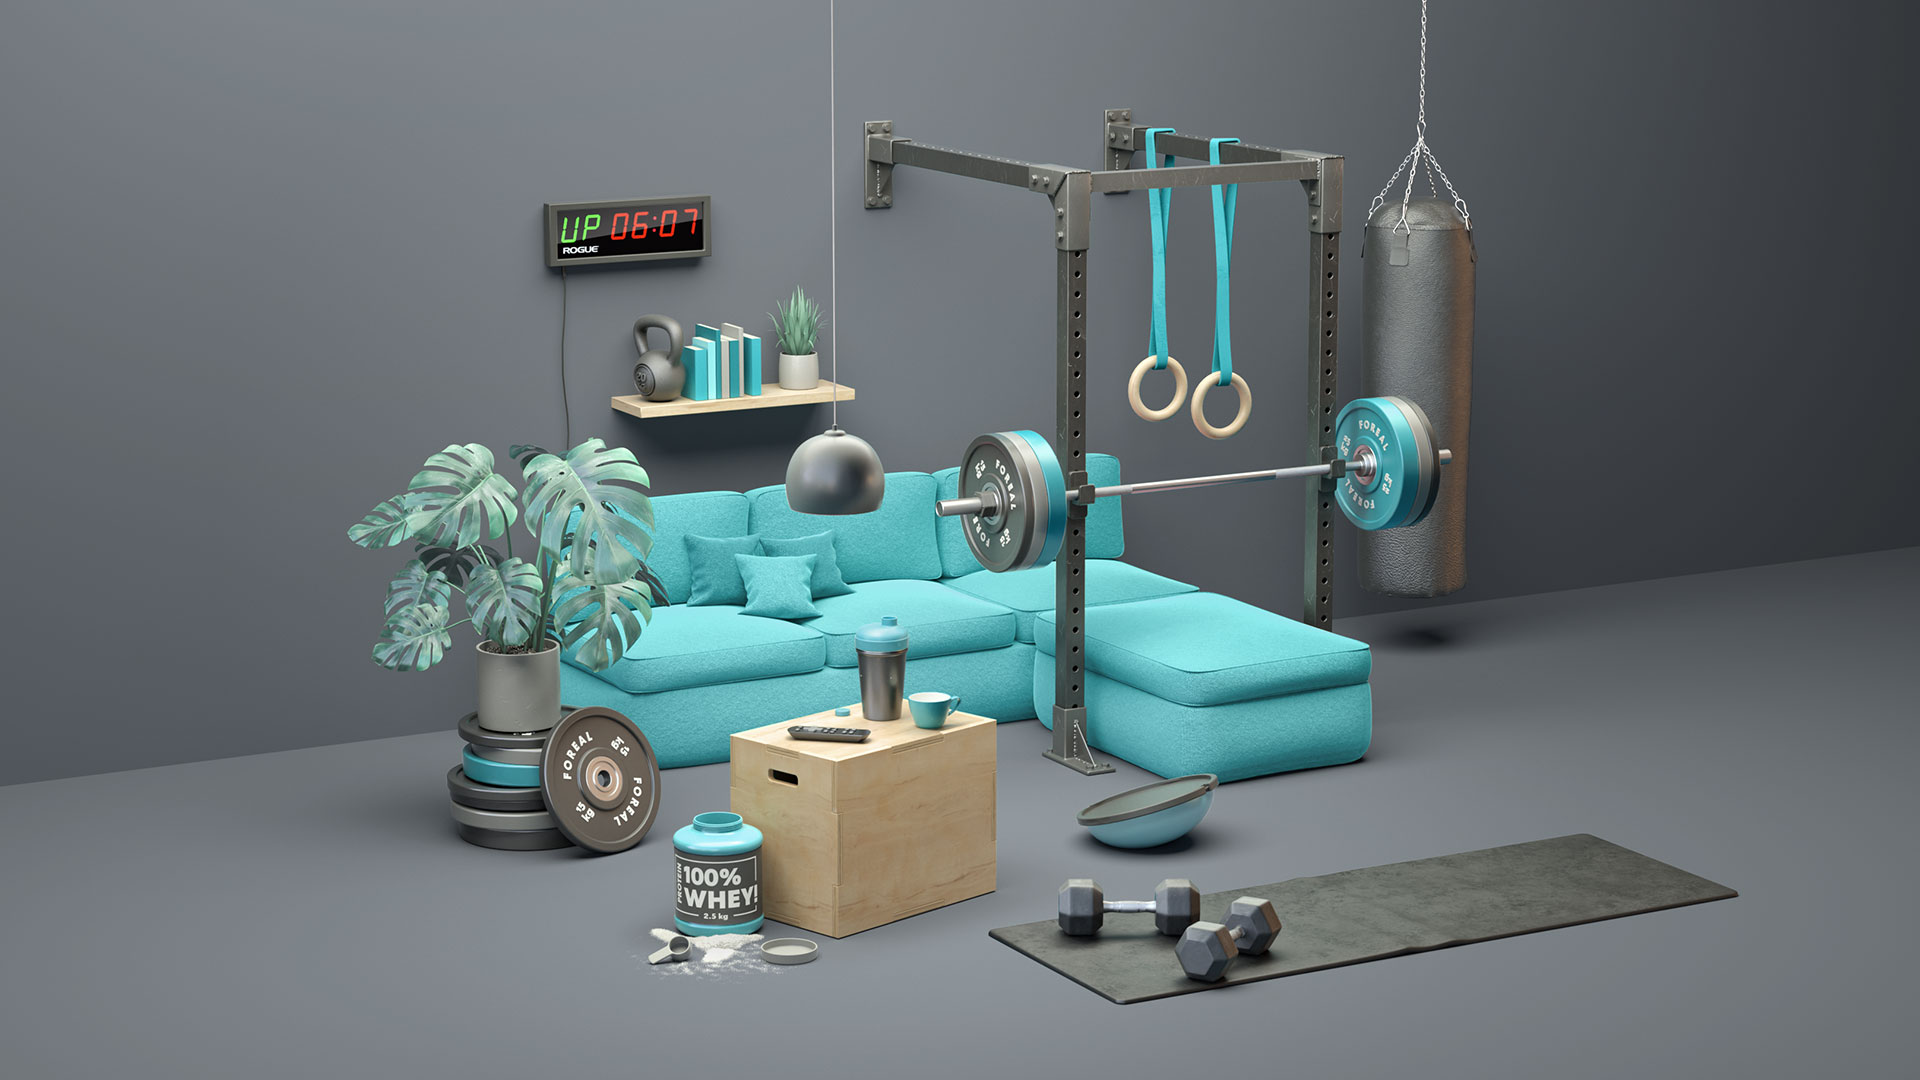 foreal_crossfit_box_living_room